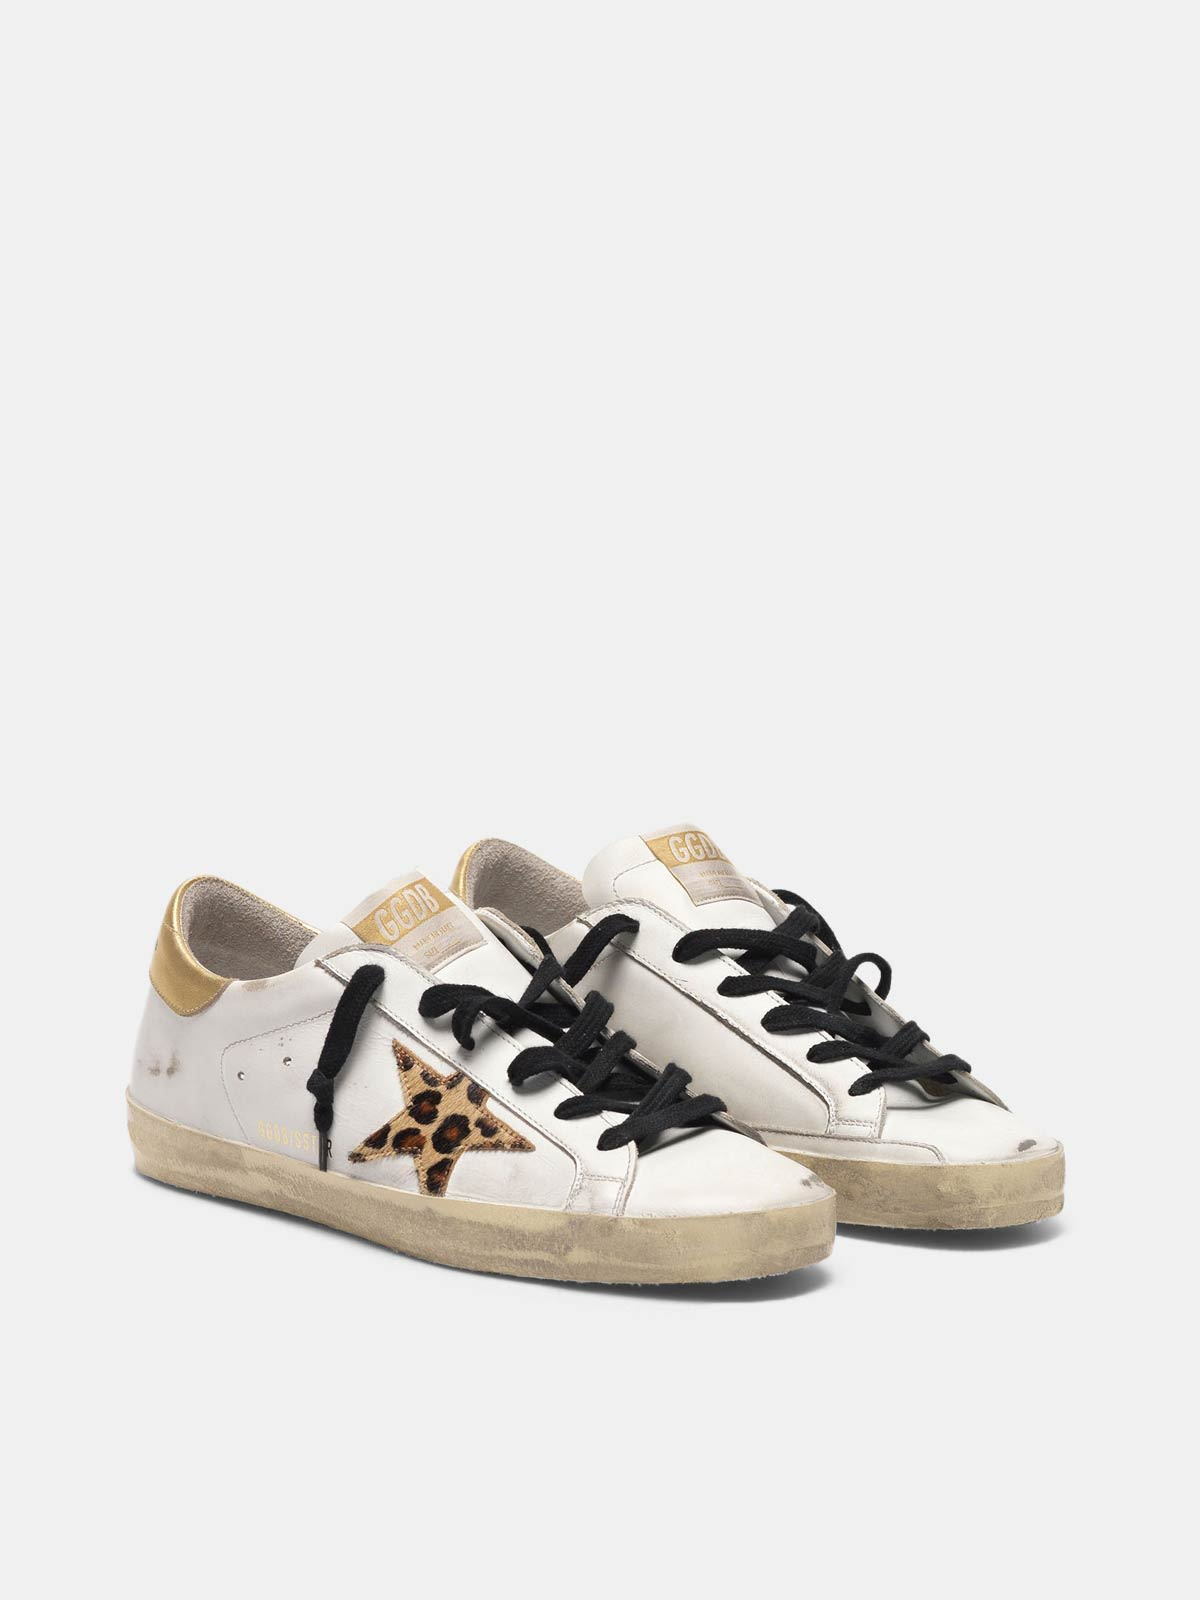 Golden Goose - Super-Star sneakers with leopard print star and snakeskin print heel tab in